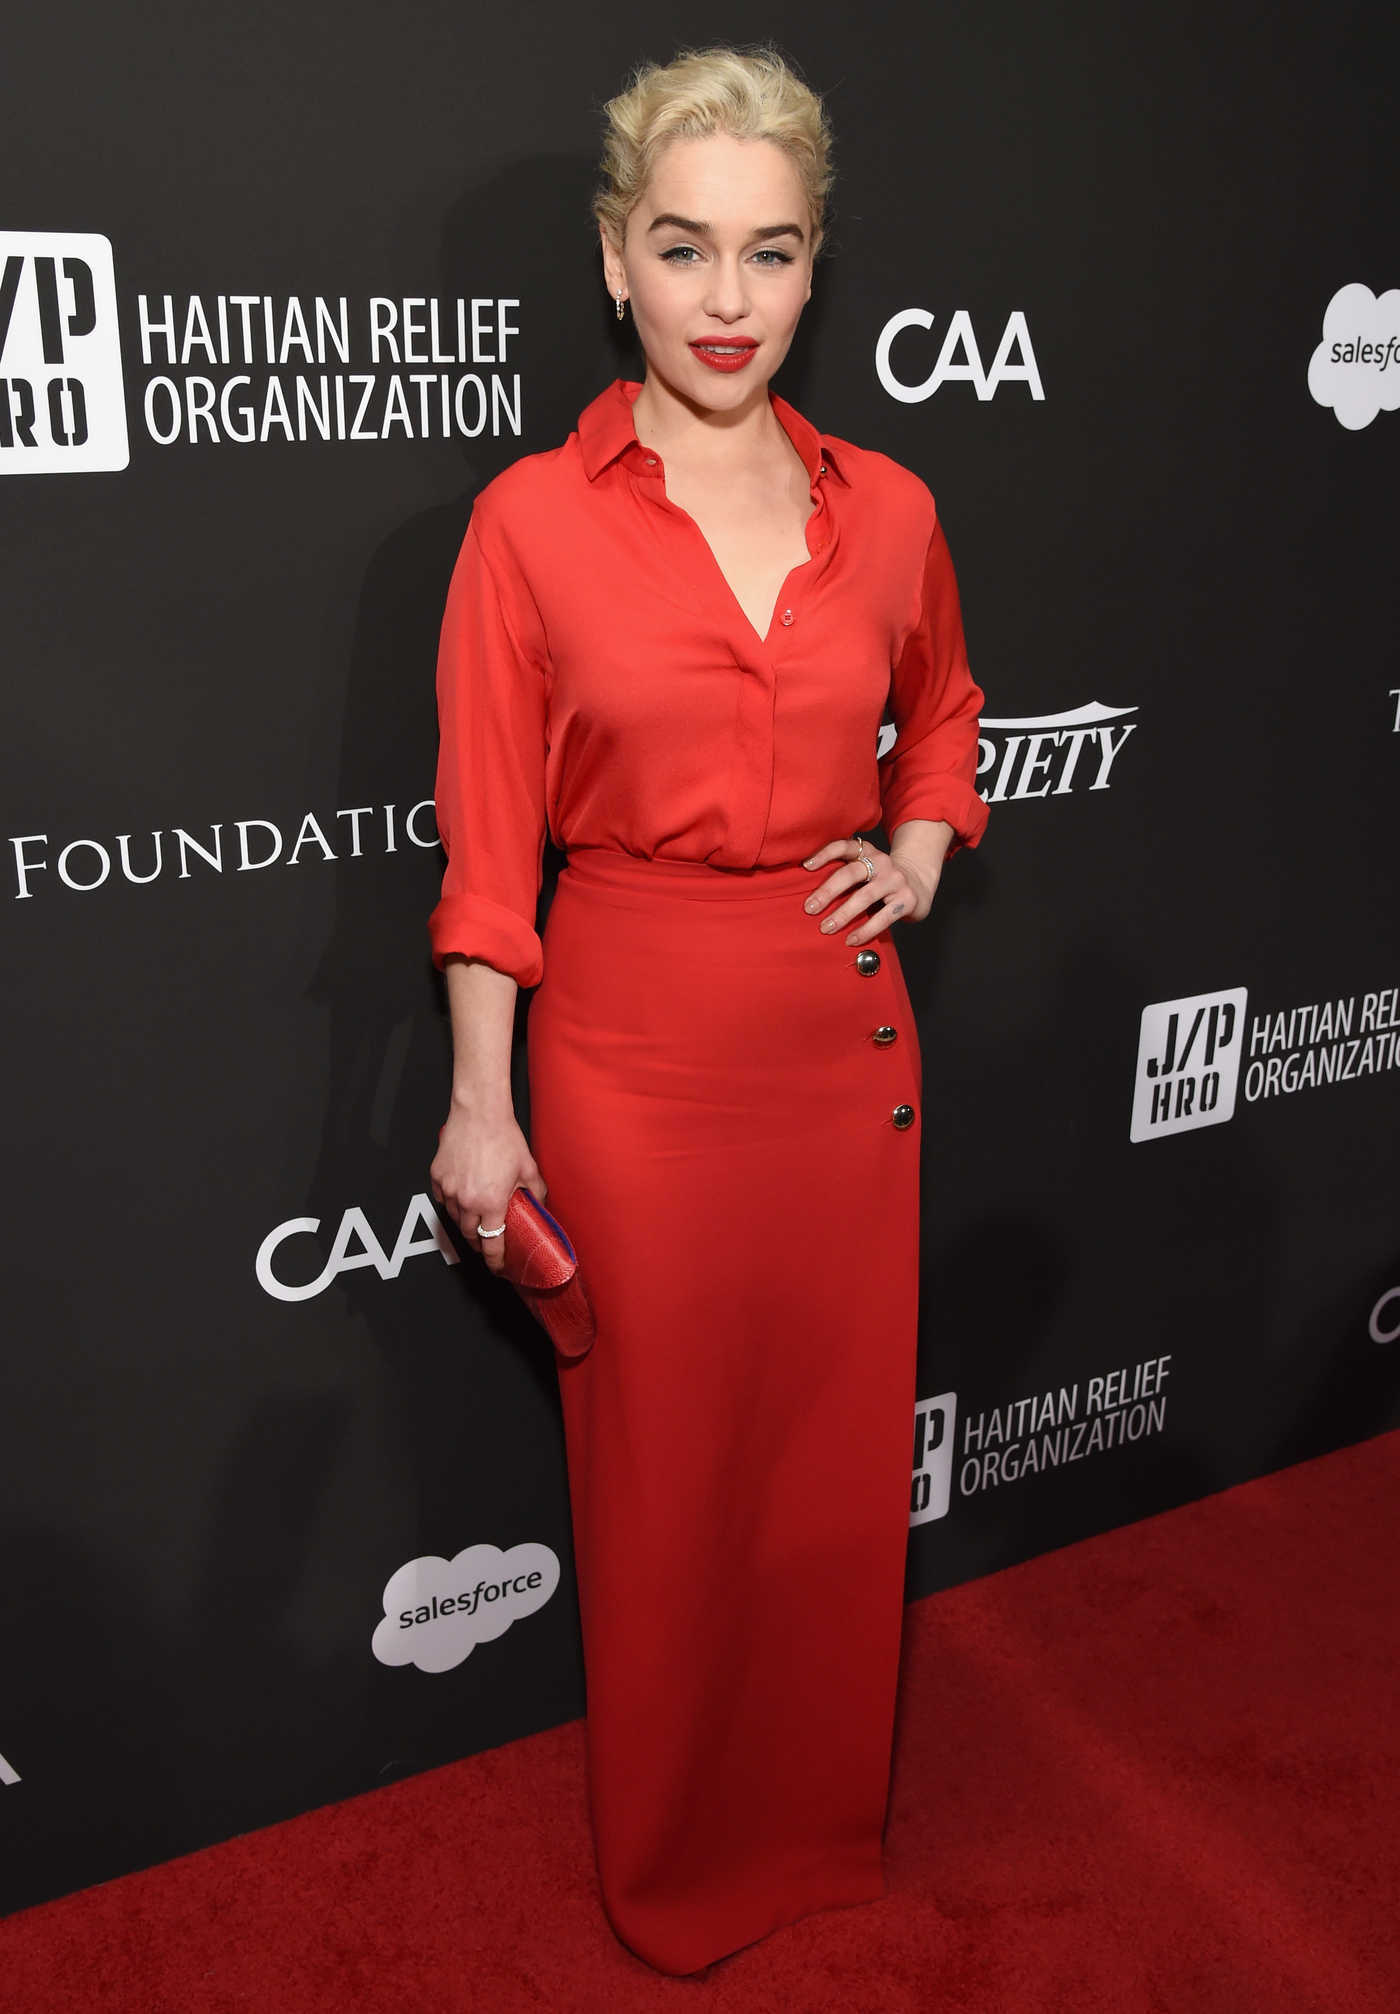 Emilia Clarke at the 7th Annual Sean Penn and Friends HAITI RISING Gala Benefiting J/P Haitian Relief Organization in Hollywood 01/06/2018